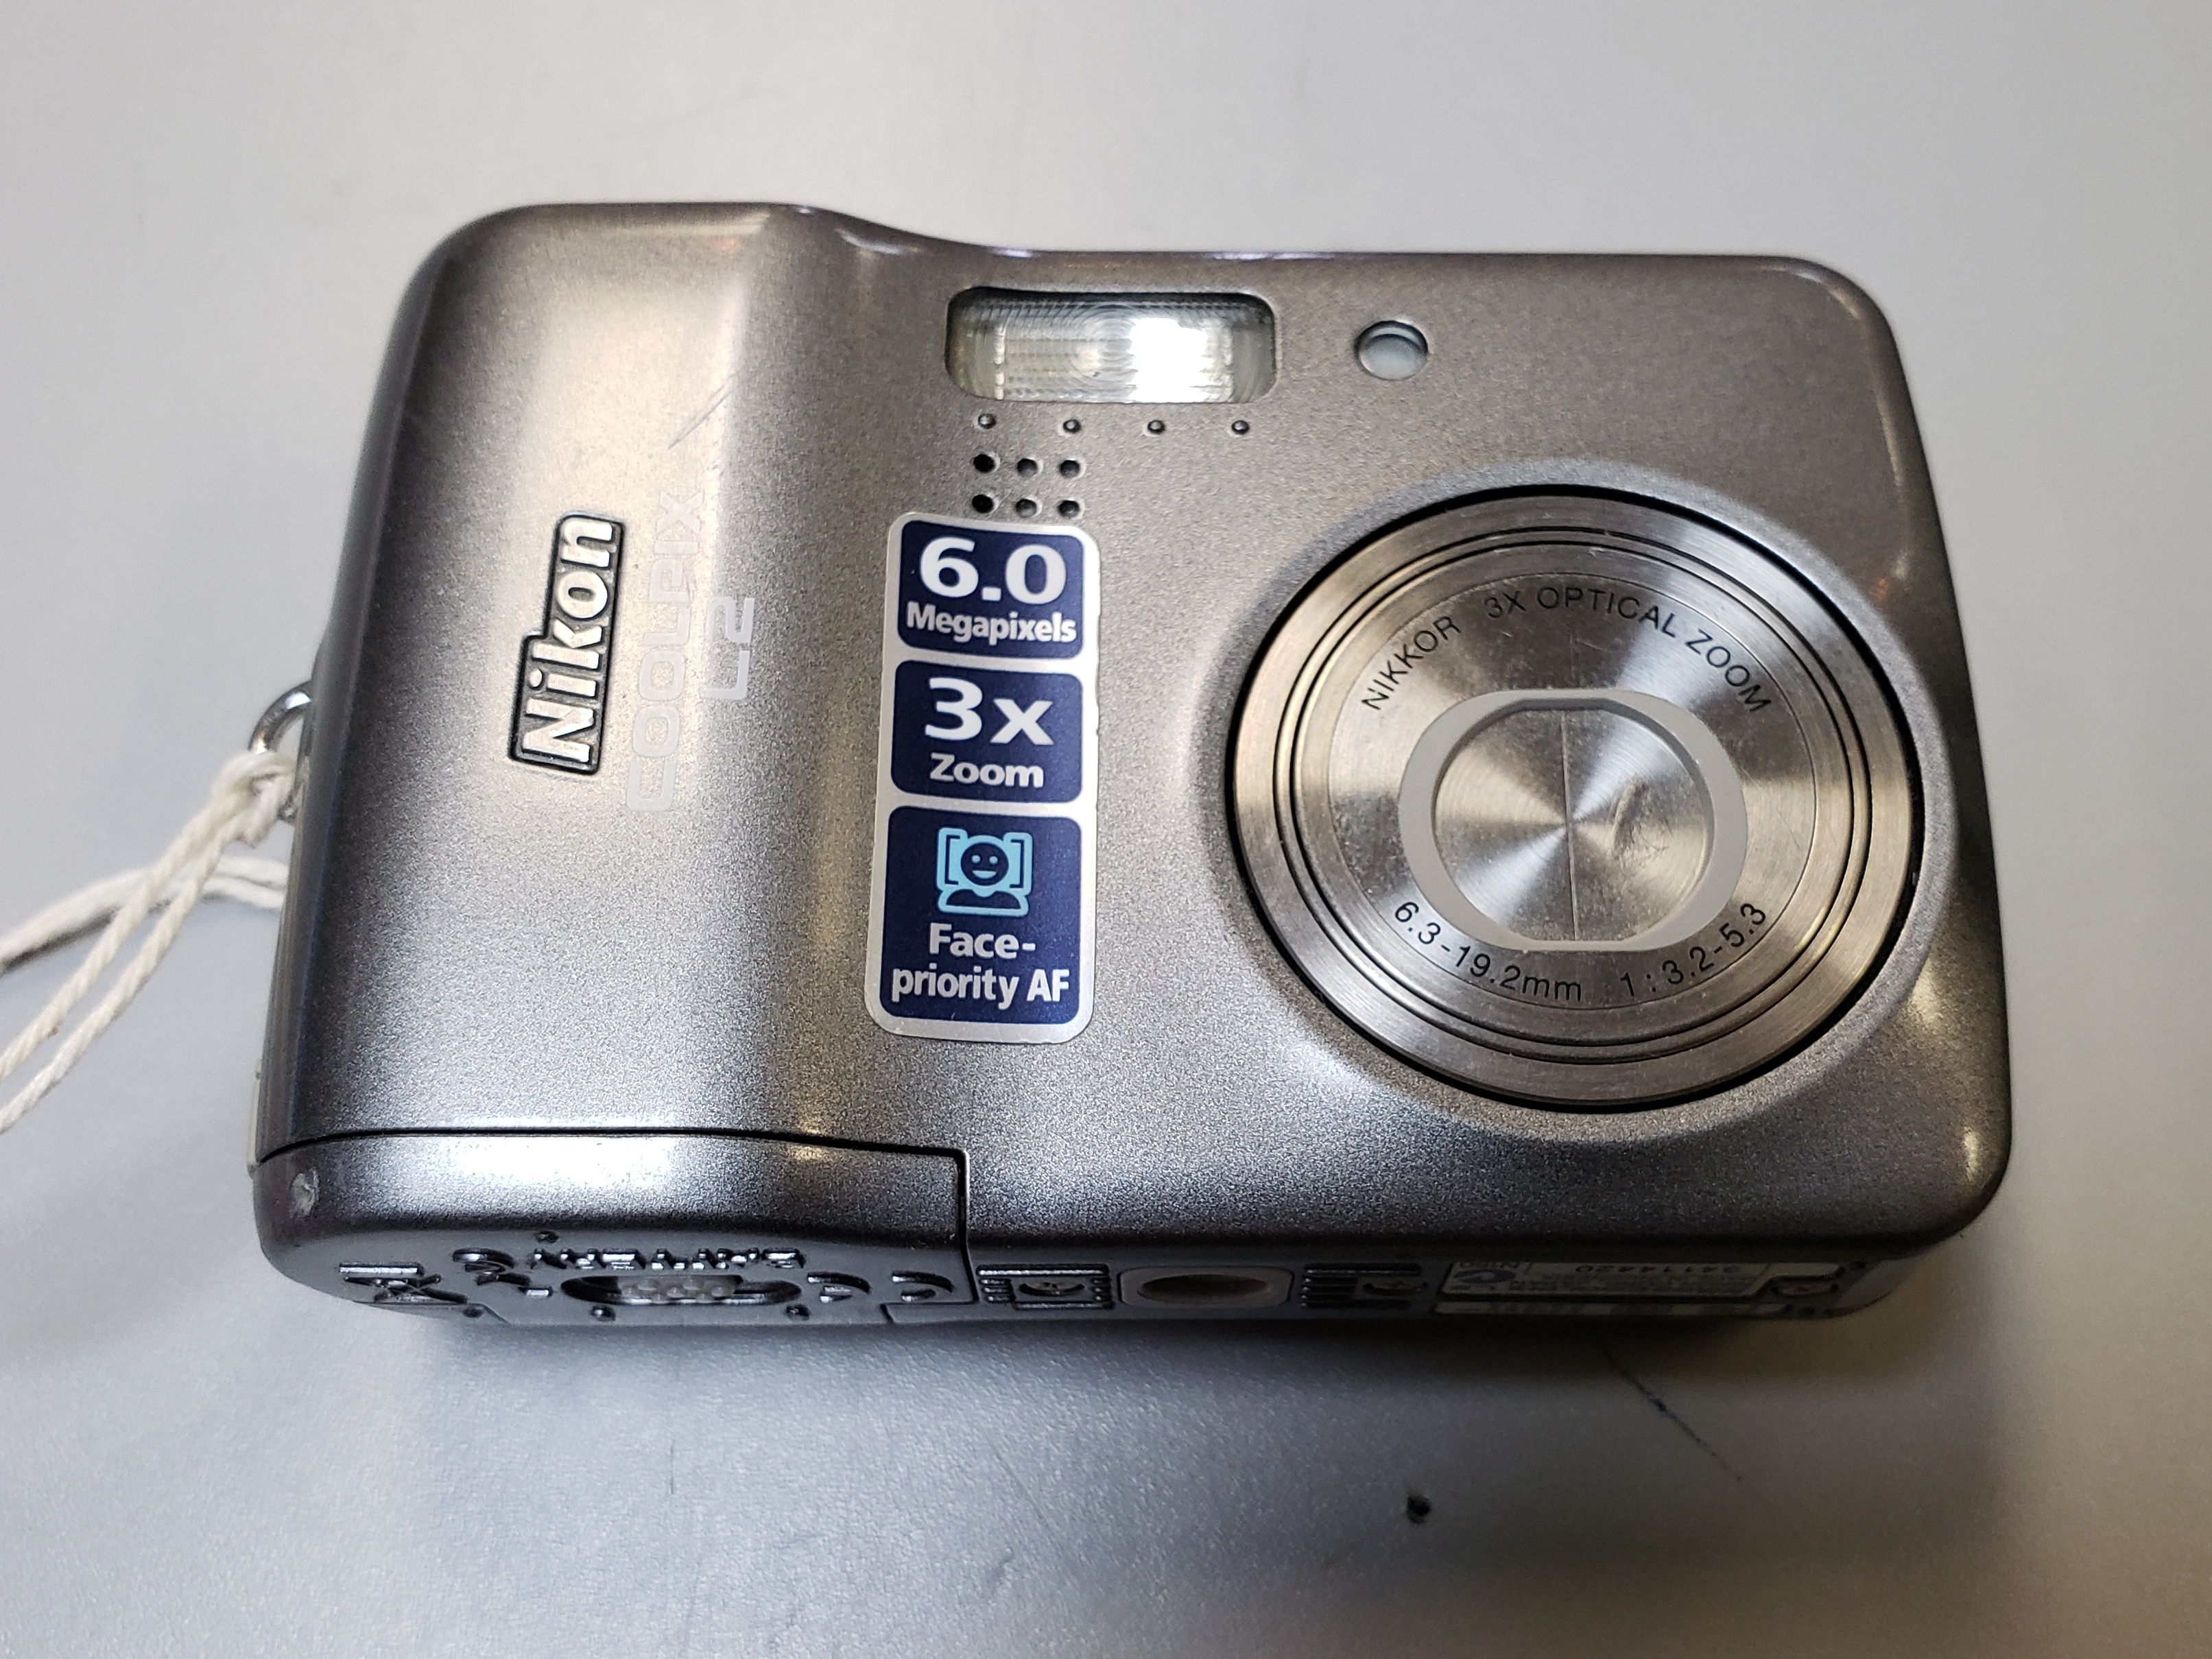 NIKON - COOLPIX L2 - 6 MP 3X ZOOM DIGITAL CAMERA